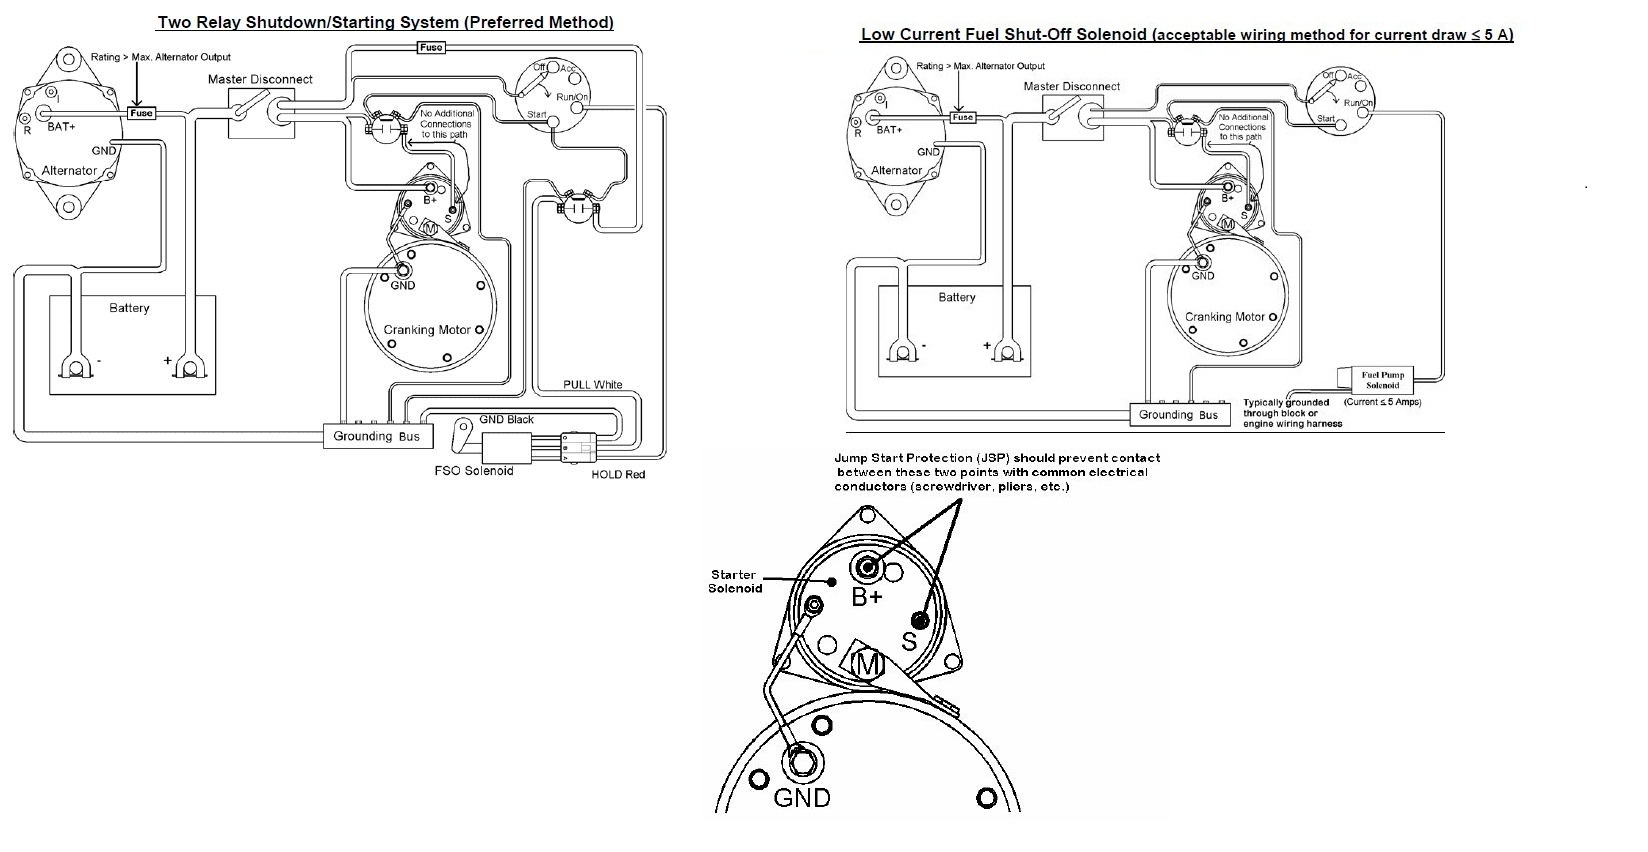 Basic Fuel Shutoff Solenoid Starter Wiring Information on electric chopper wiring diagram